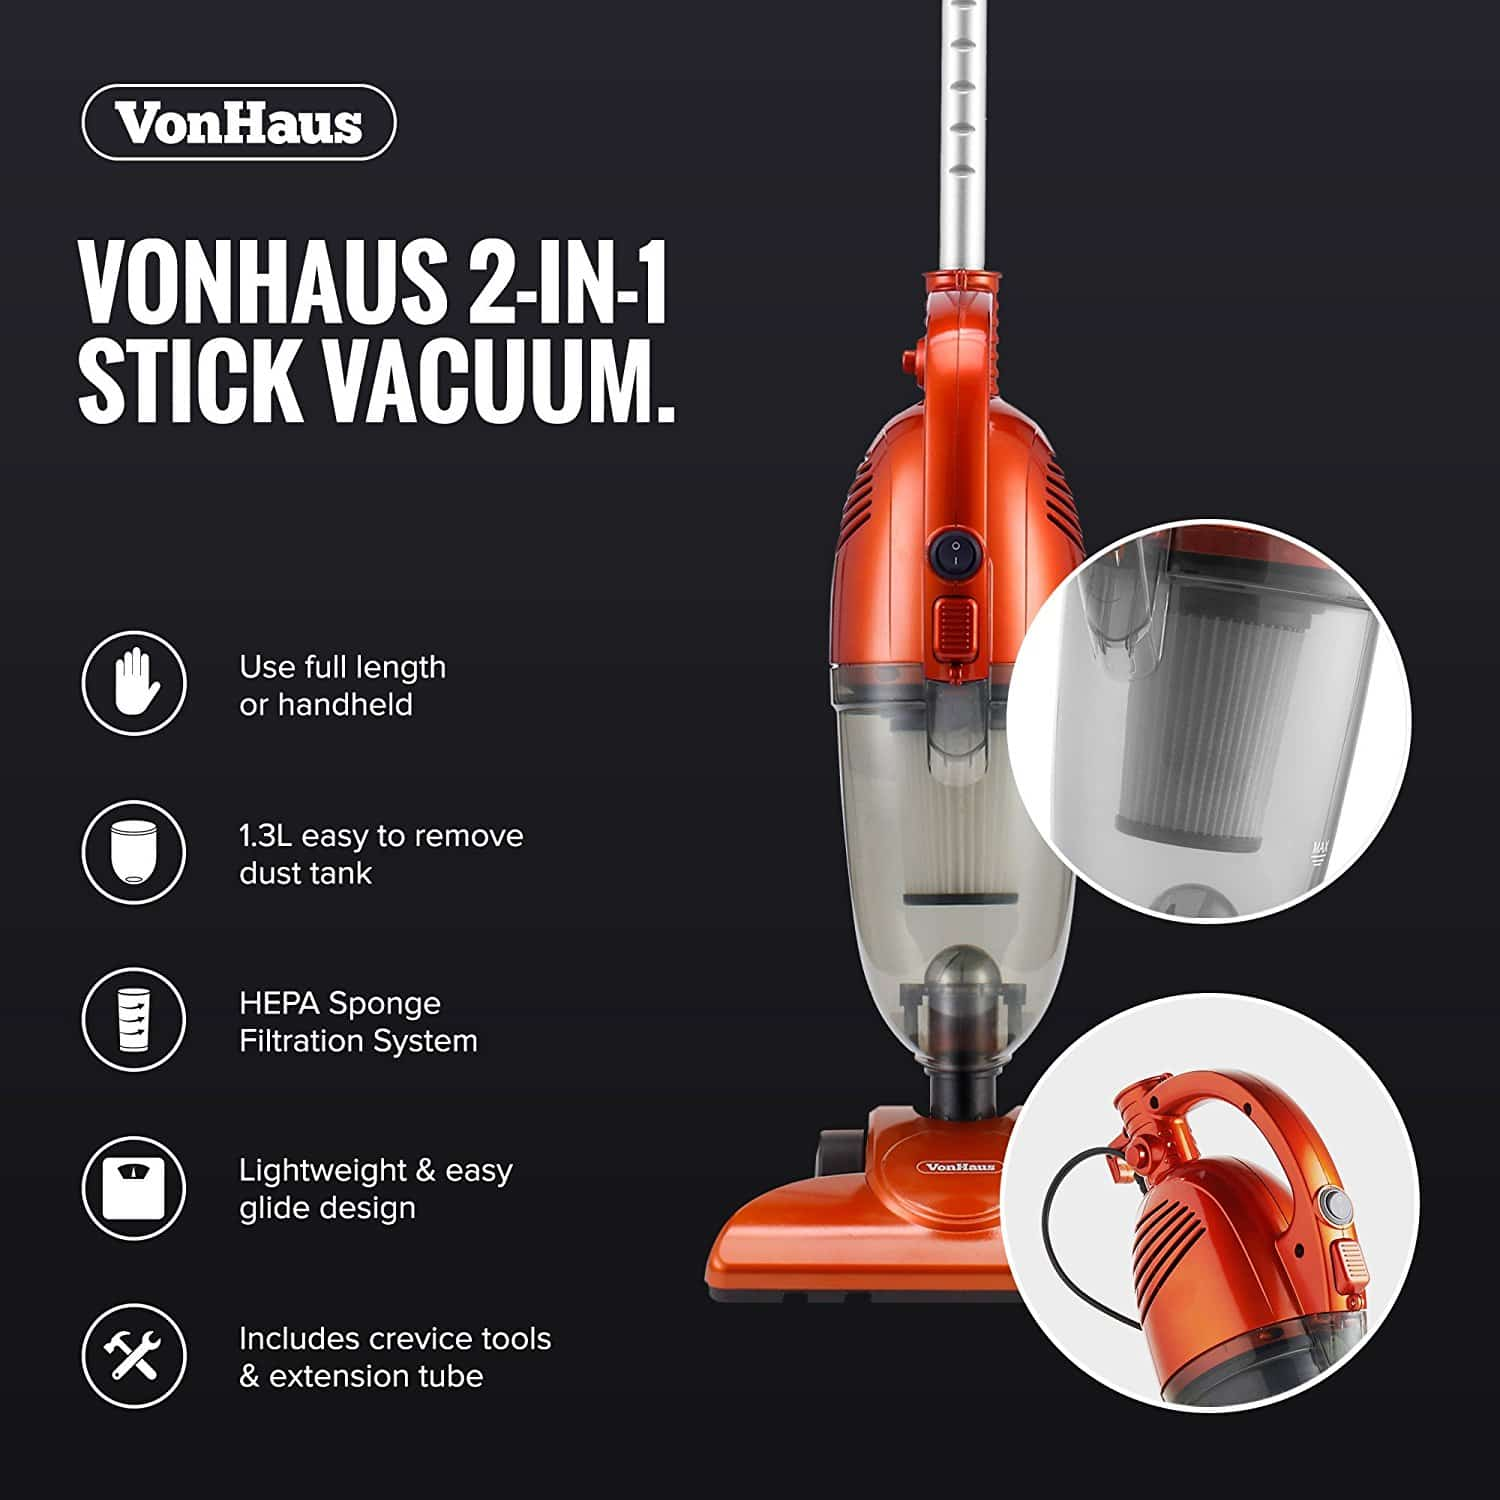 best corded stick vacuum for laminate floors